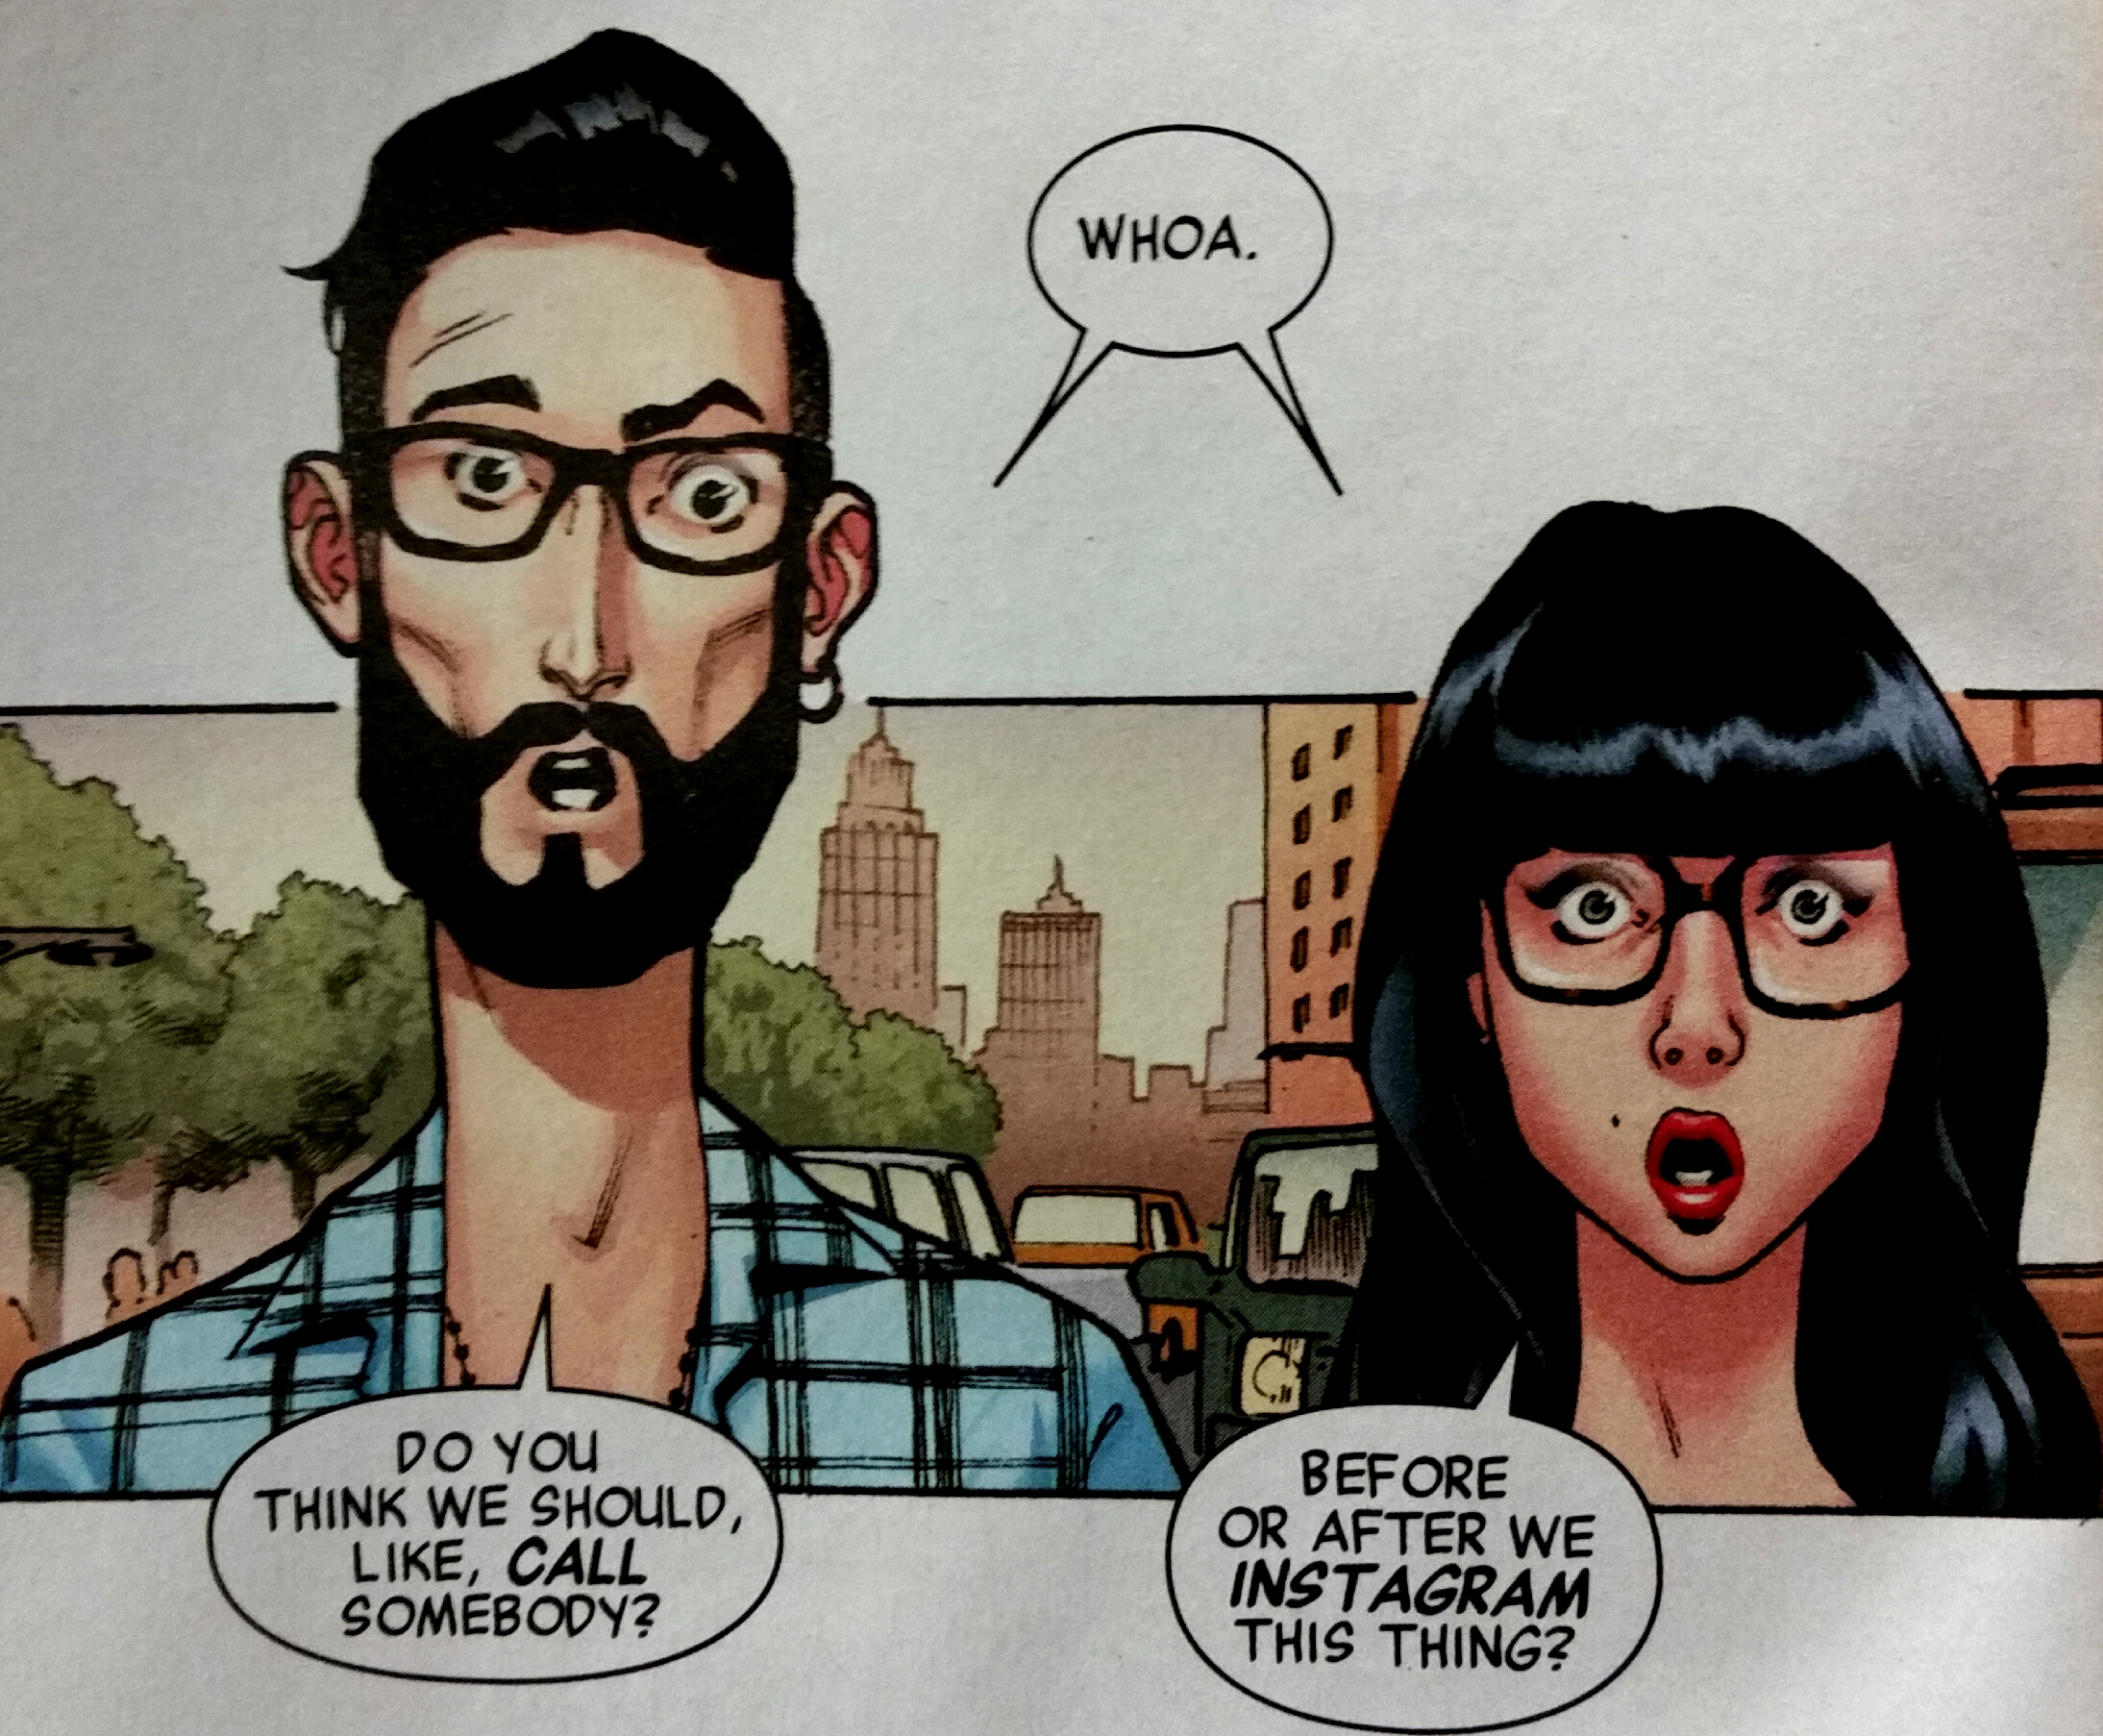 Also? Looks like Matt Fraction and Kelly Sue Deconnick are still in Marvel's heart.